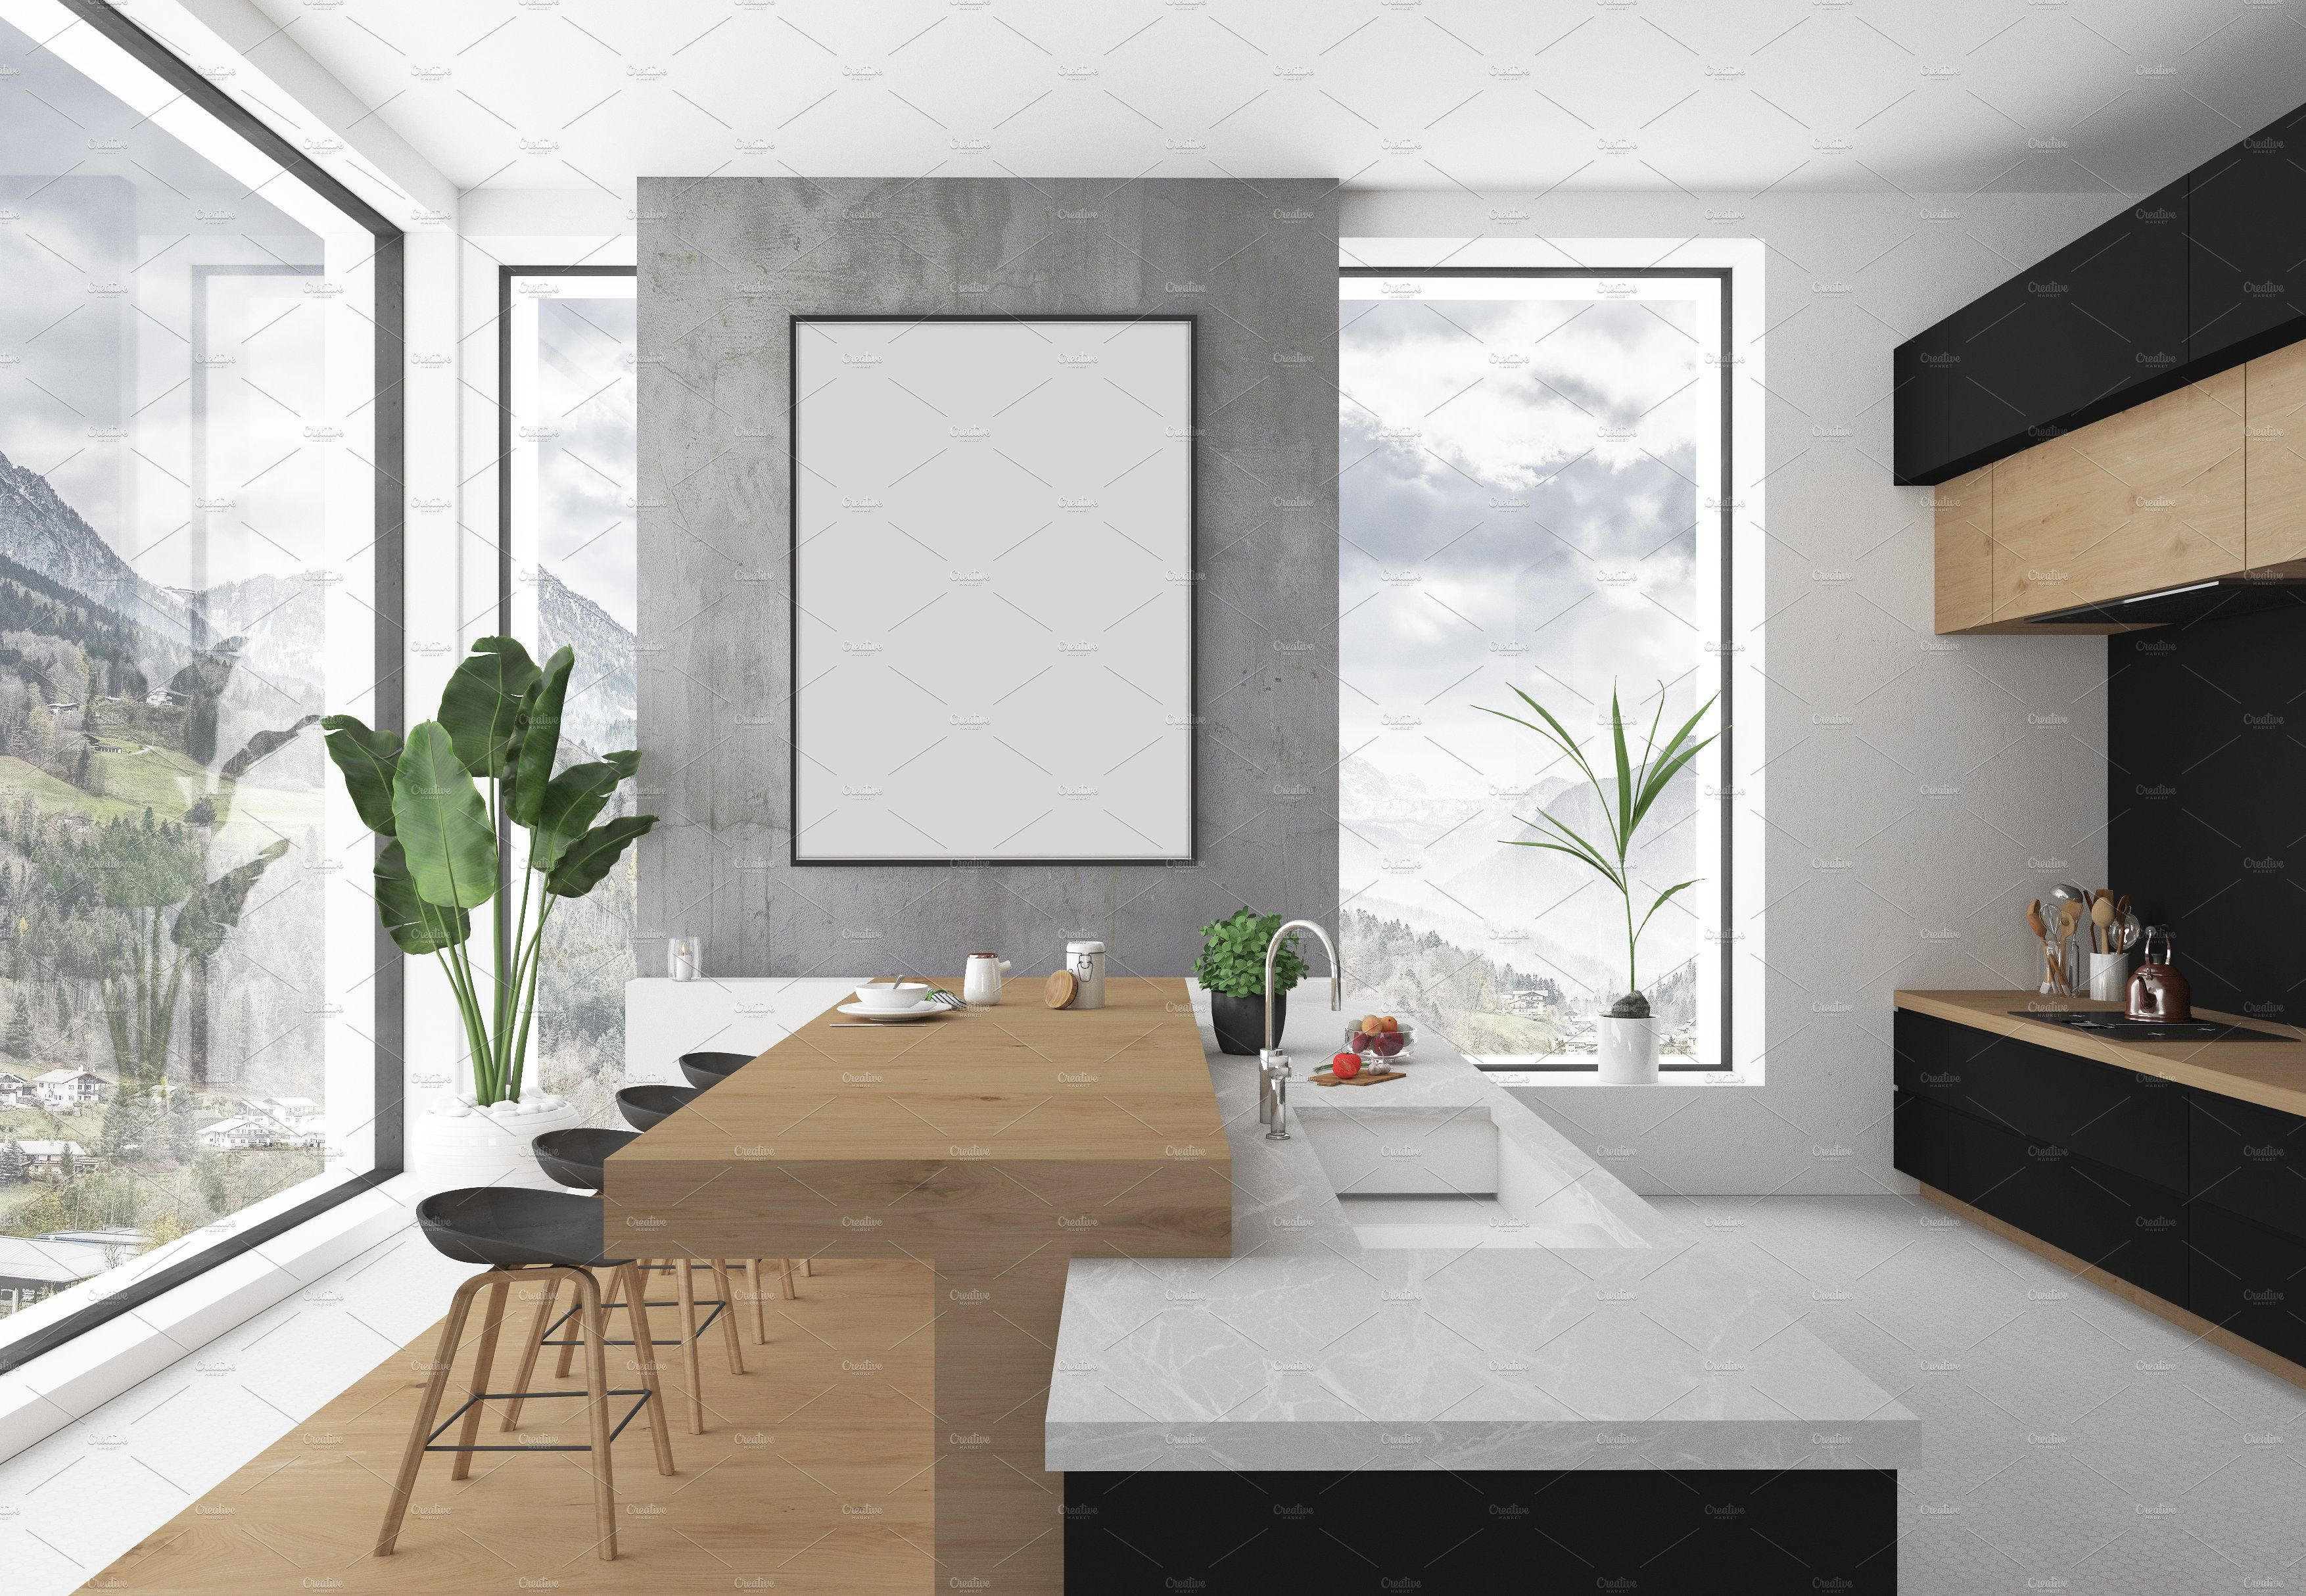 Blank clipart 1x1 vector freeuse library Kitchen mockup - blank wall mockup #PURCHASE#website#High#INCLUDES ... vector freeuse library